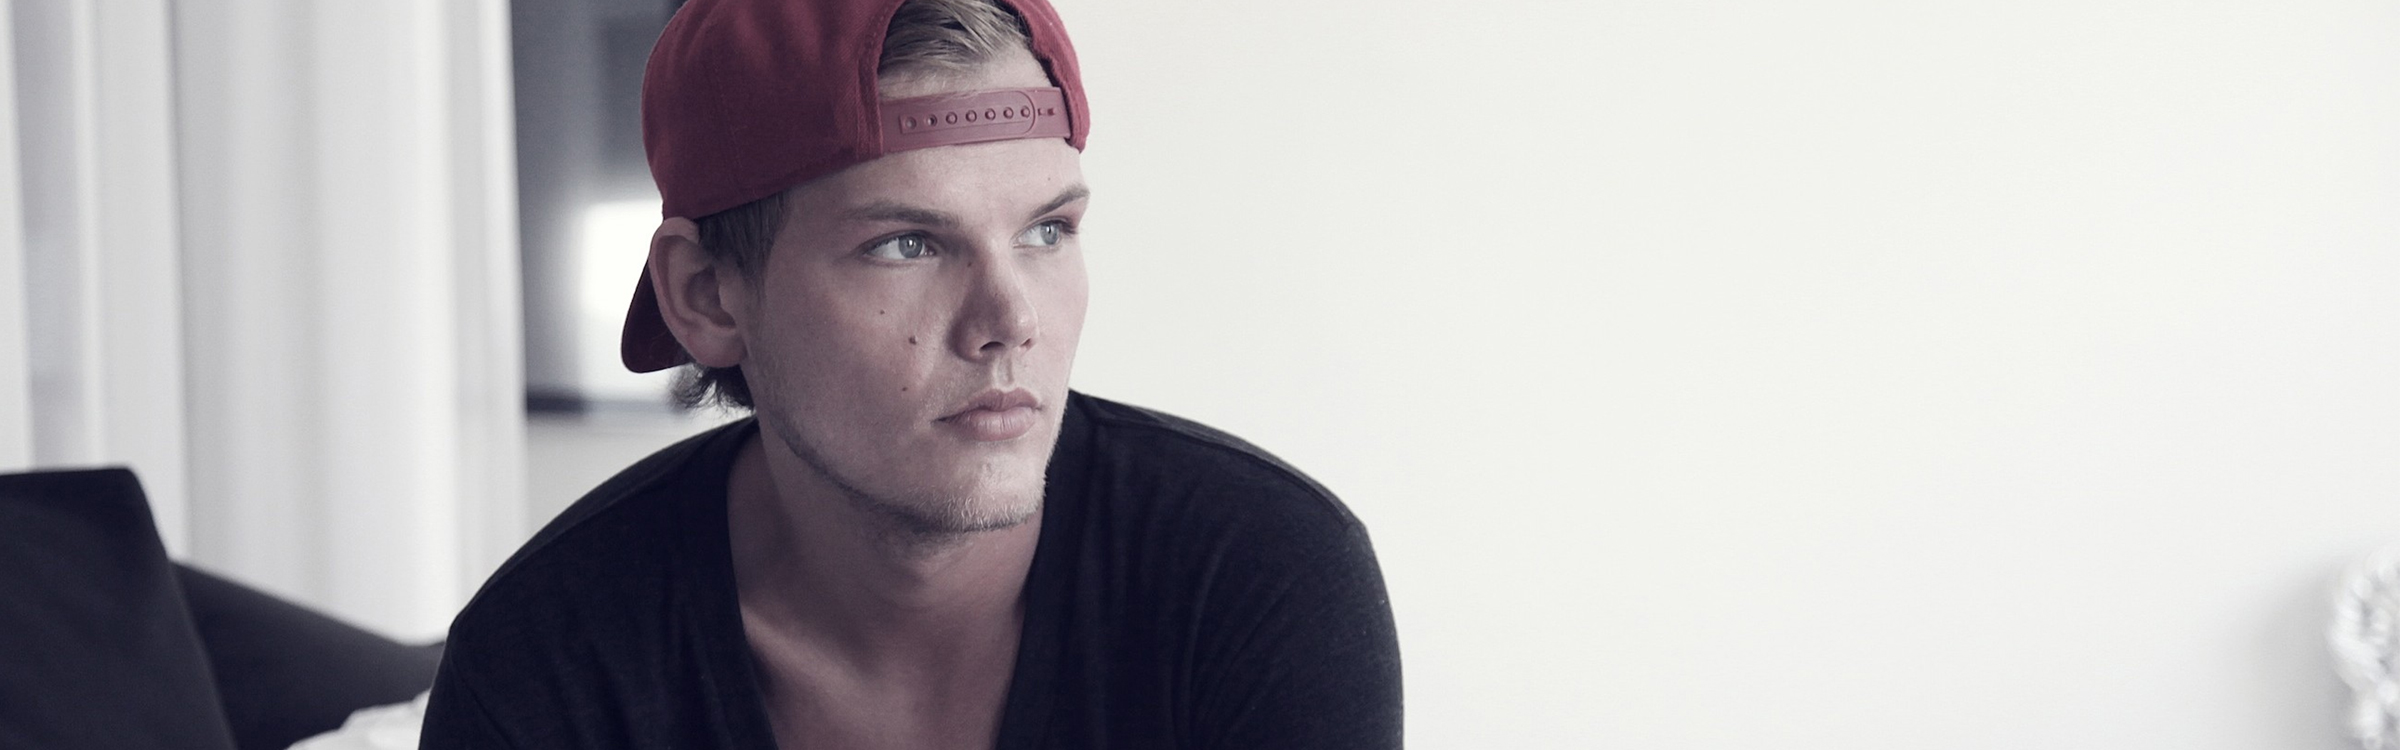 Avicii back header